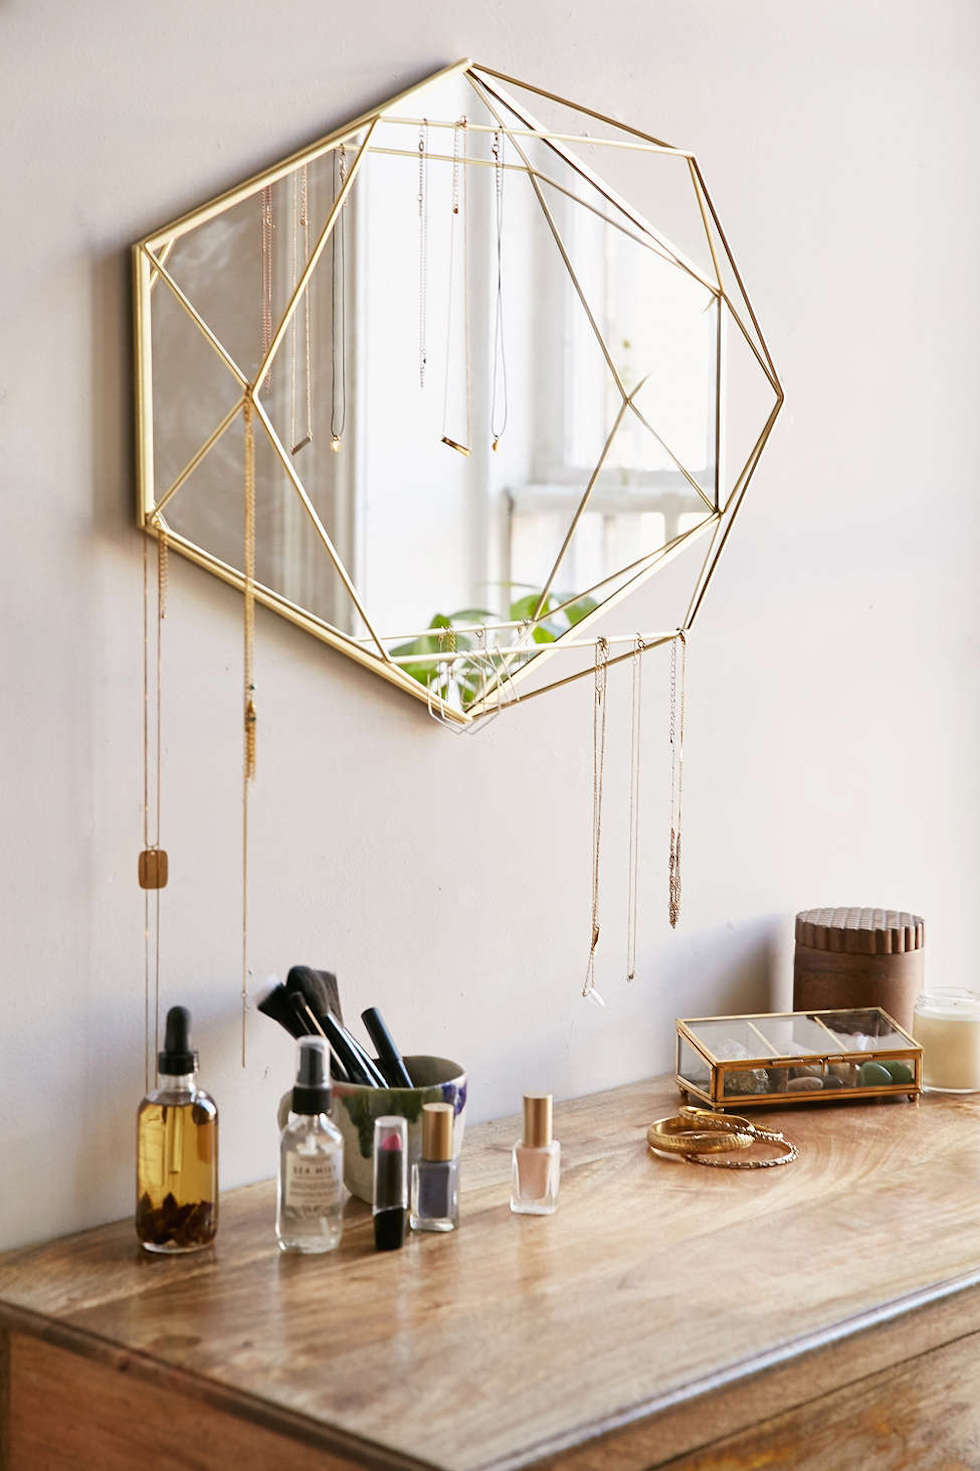 Stunning Wall mirrors Décor Ideas for Your Home17 must see wall mirrors 25 Must See Wall Mirrors to Inspire your Home Decor Stunning Wall mirrors D  cor Ideas for Your Home17